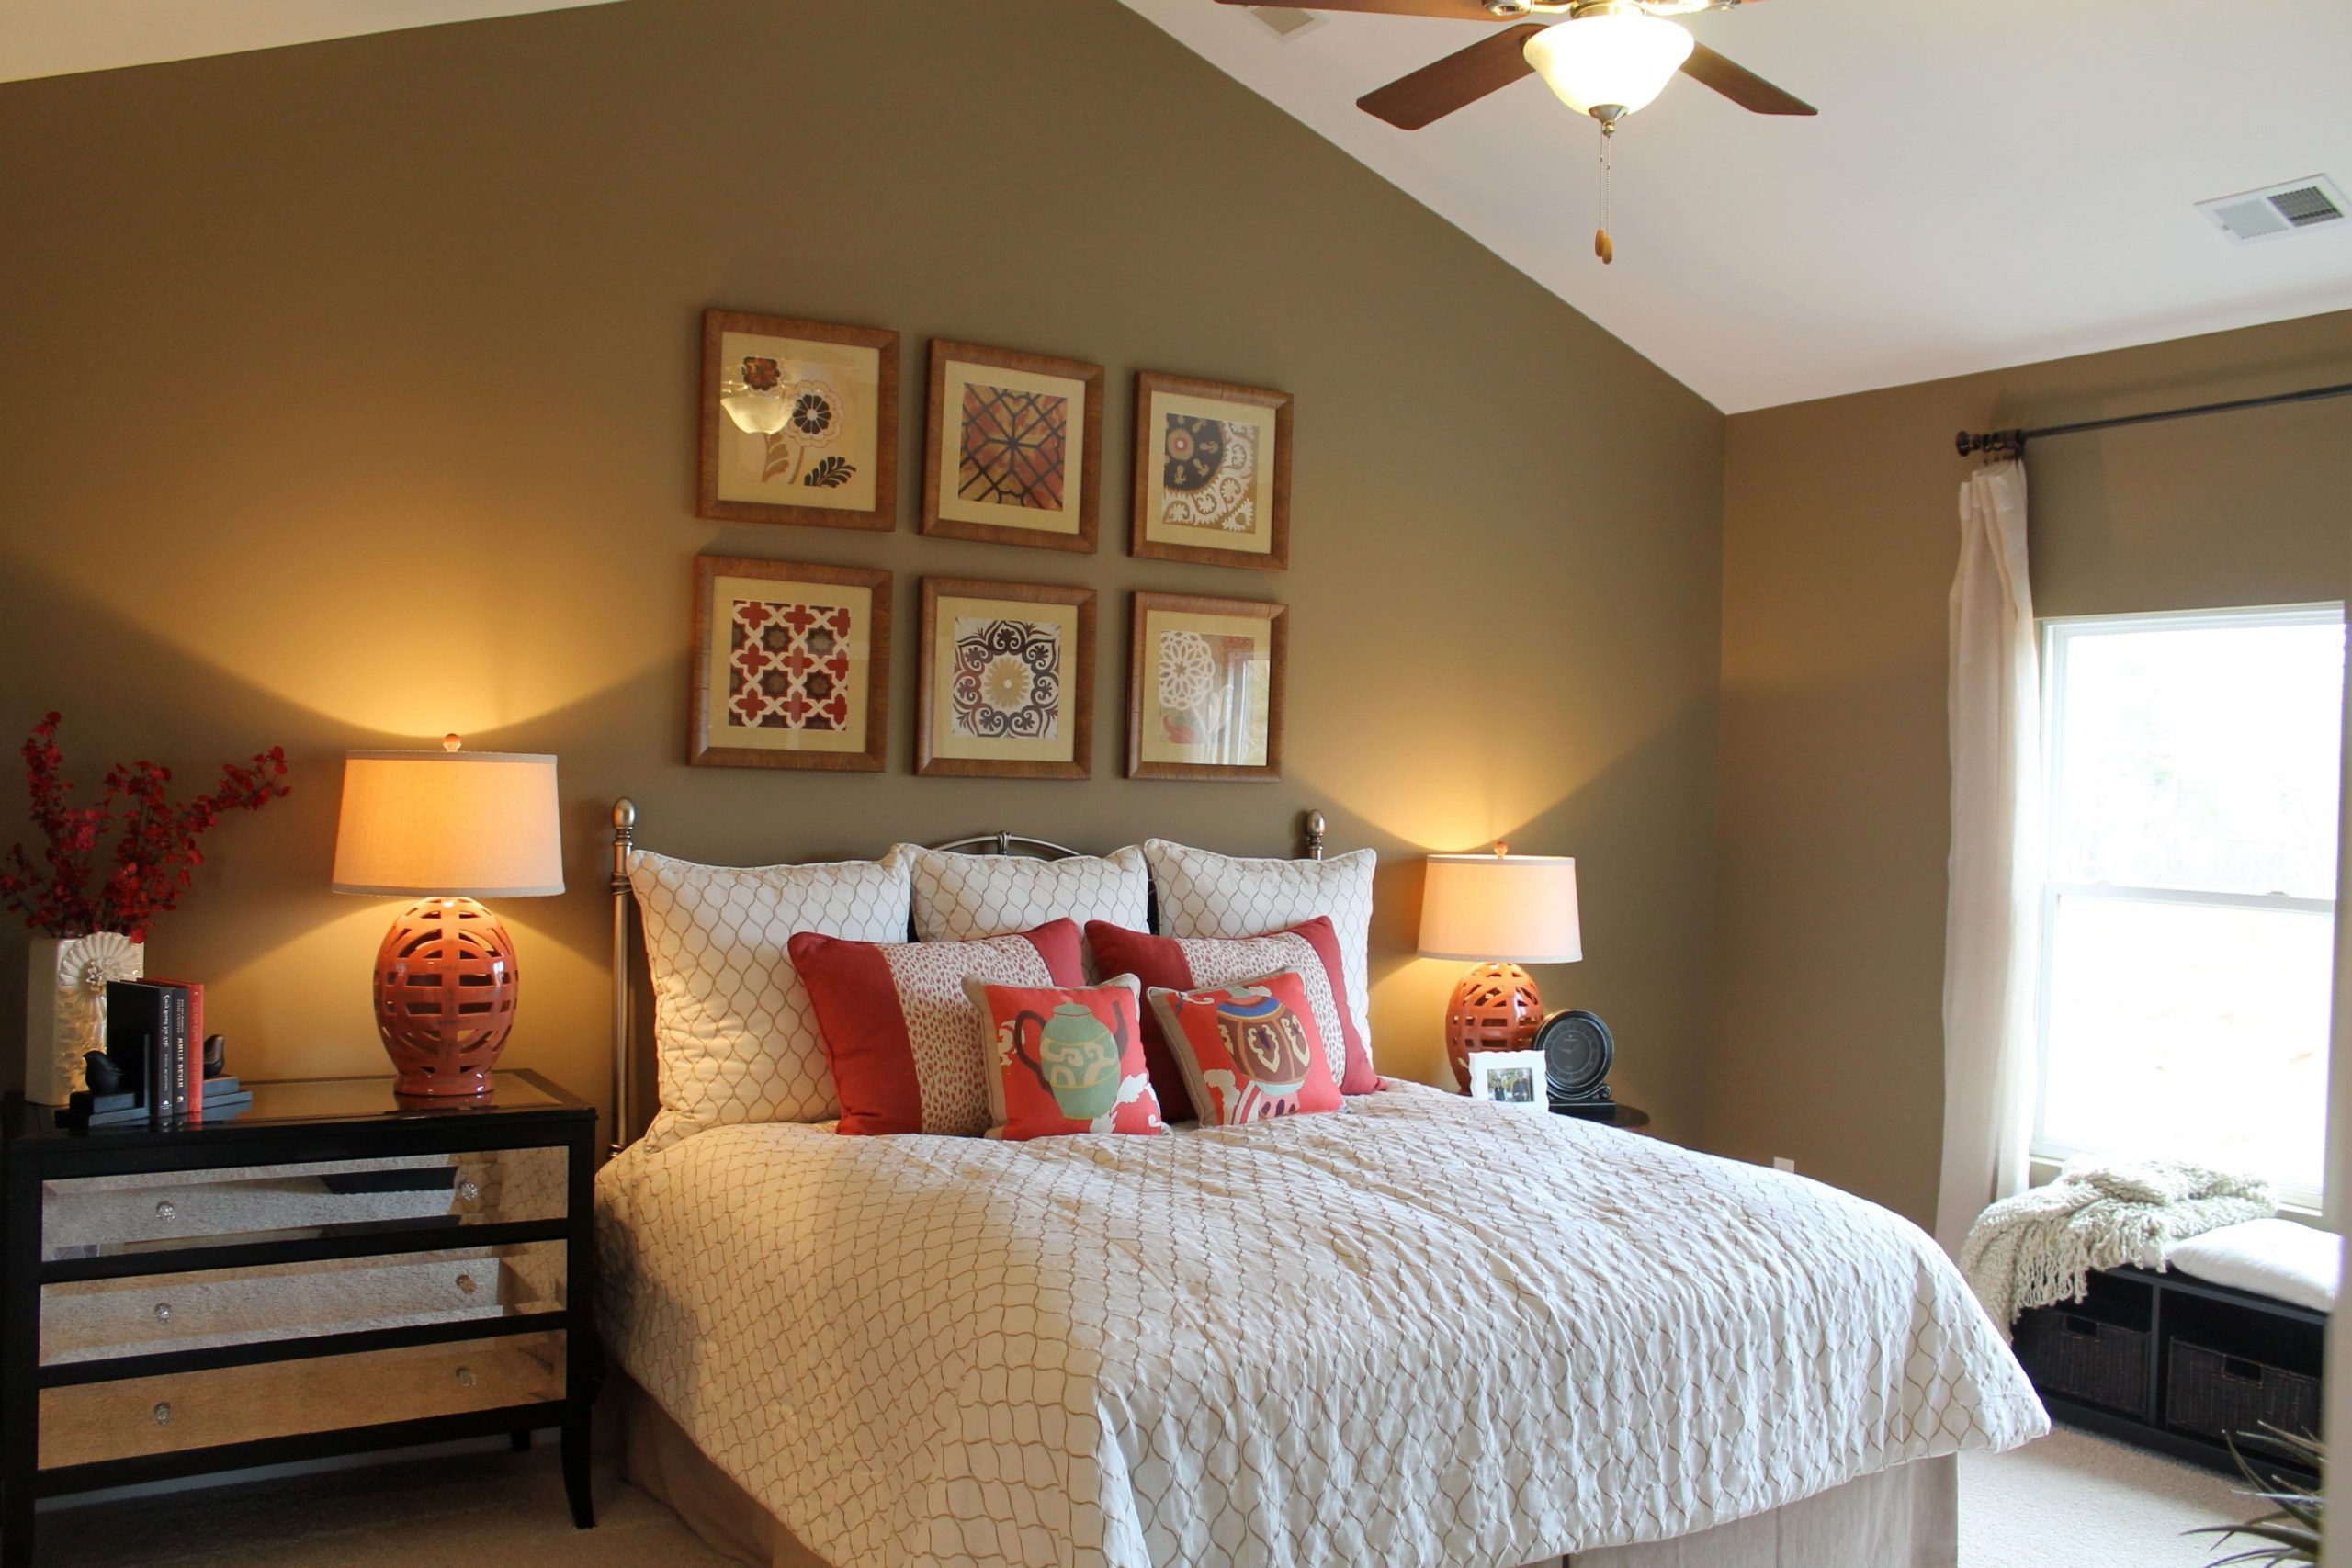 Simphome.com vaulted ceiling bedroom paint ideas cottage bedroom bedroom topic 10 slanted ceiling bedroom ideas